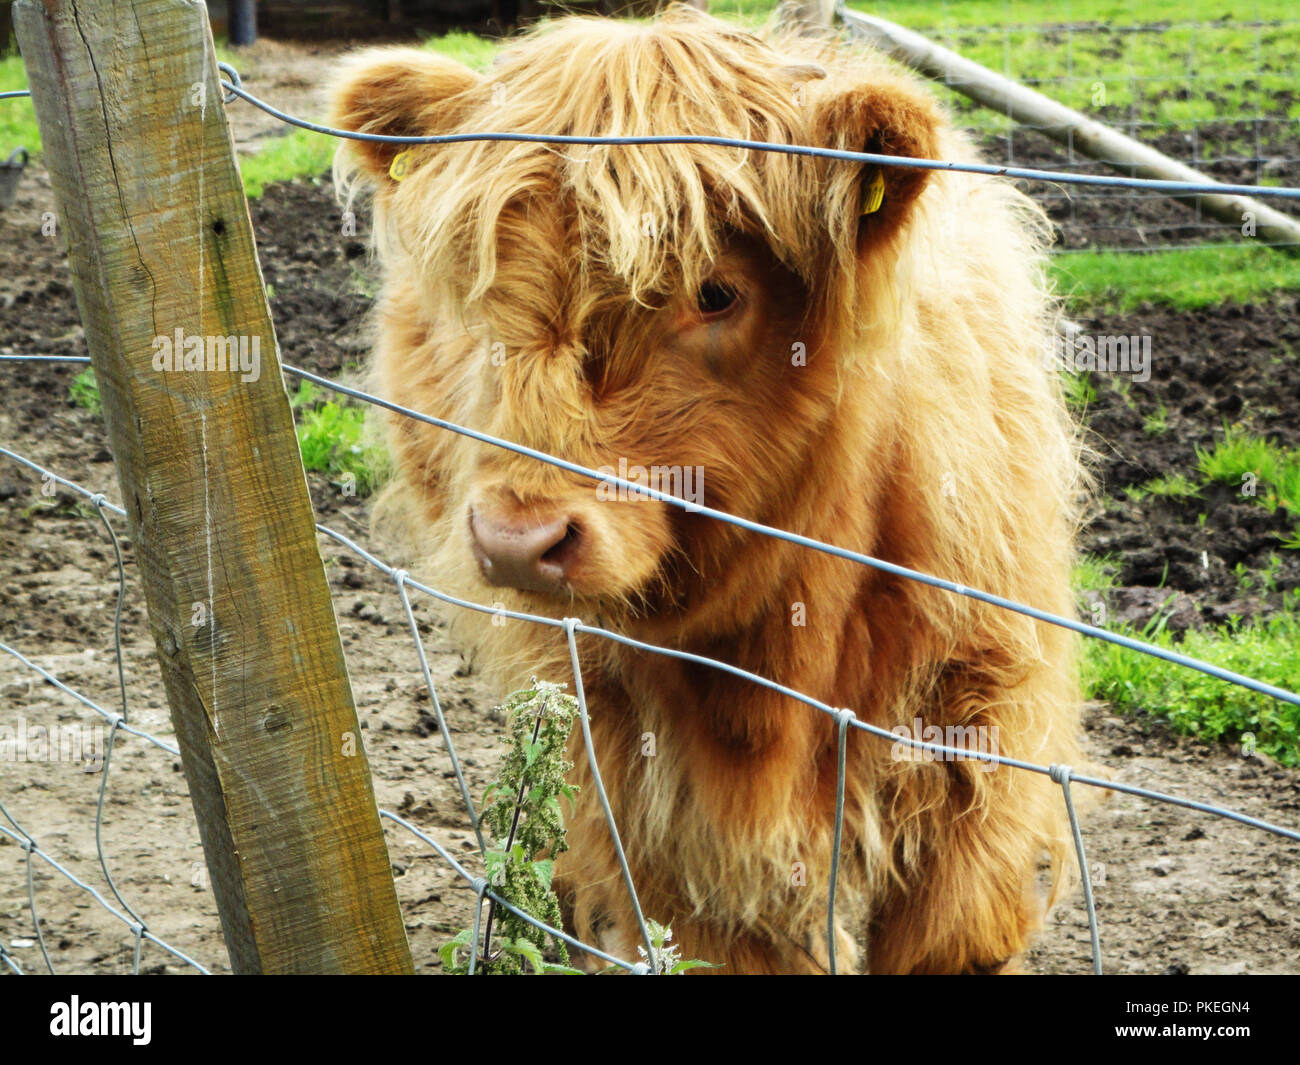 Baby highland cow found in Scotland.  Cute baby cattle on a Scotish farm. - Stock Image